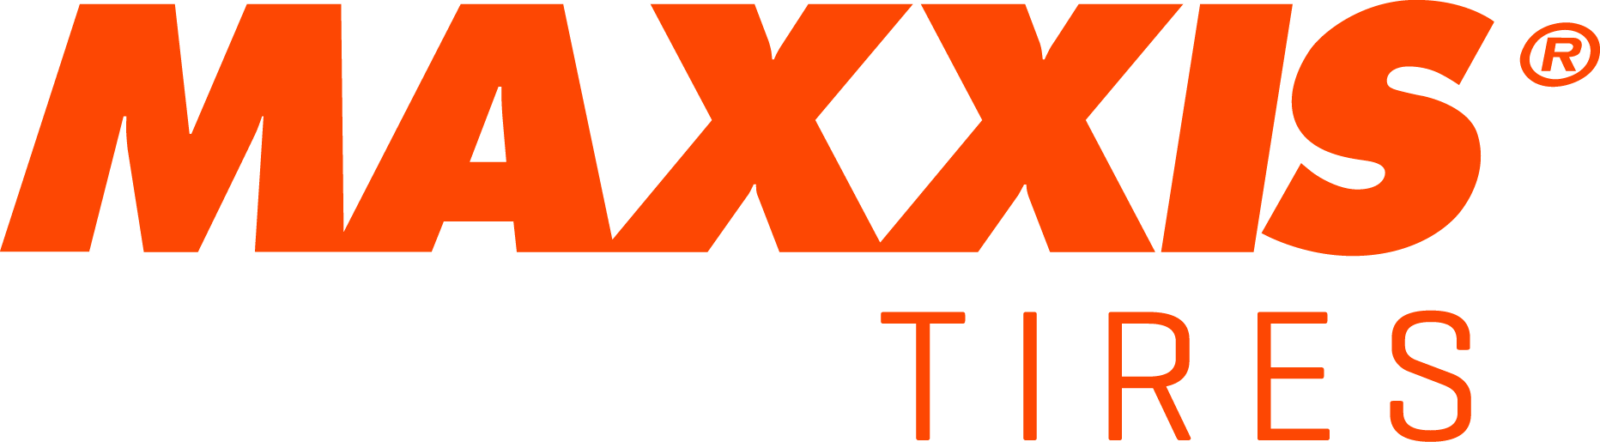 Maxxis Tires Logo